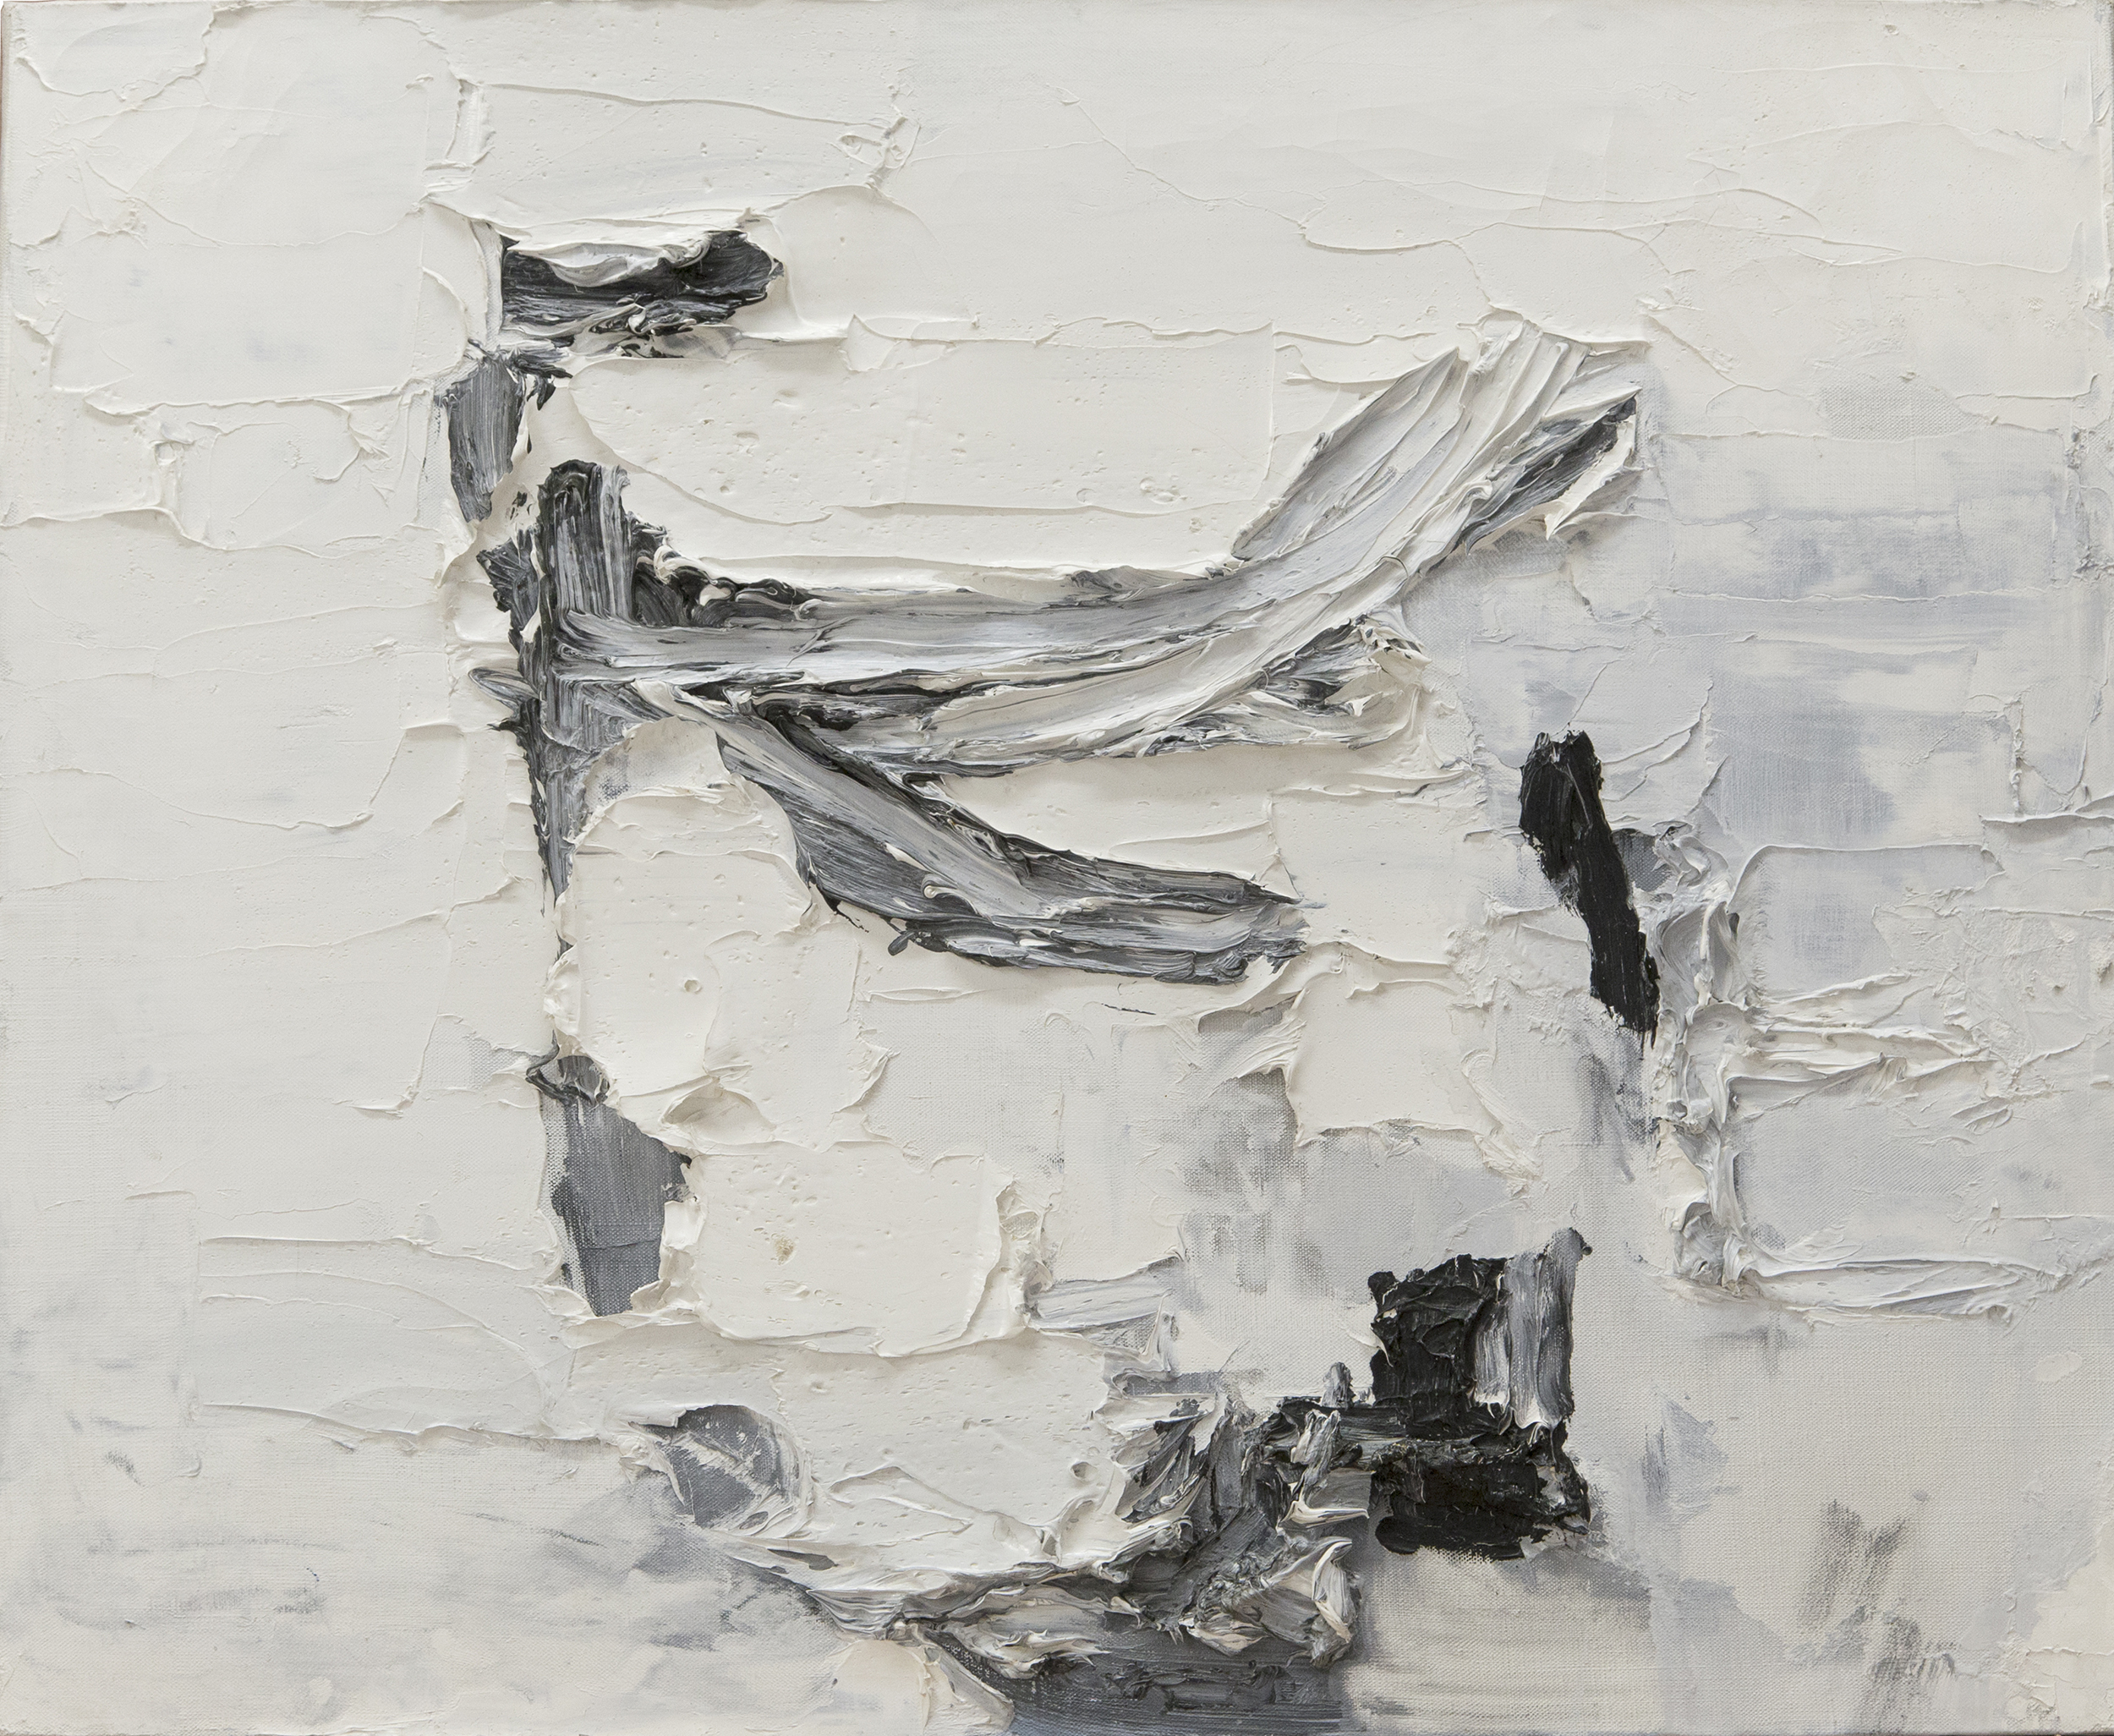 Untitled, 327 ,  Oil on canvas, 1969, 23 5/8 x 28 3/4 inches